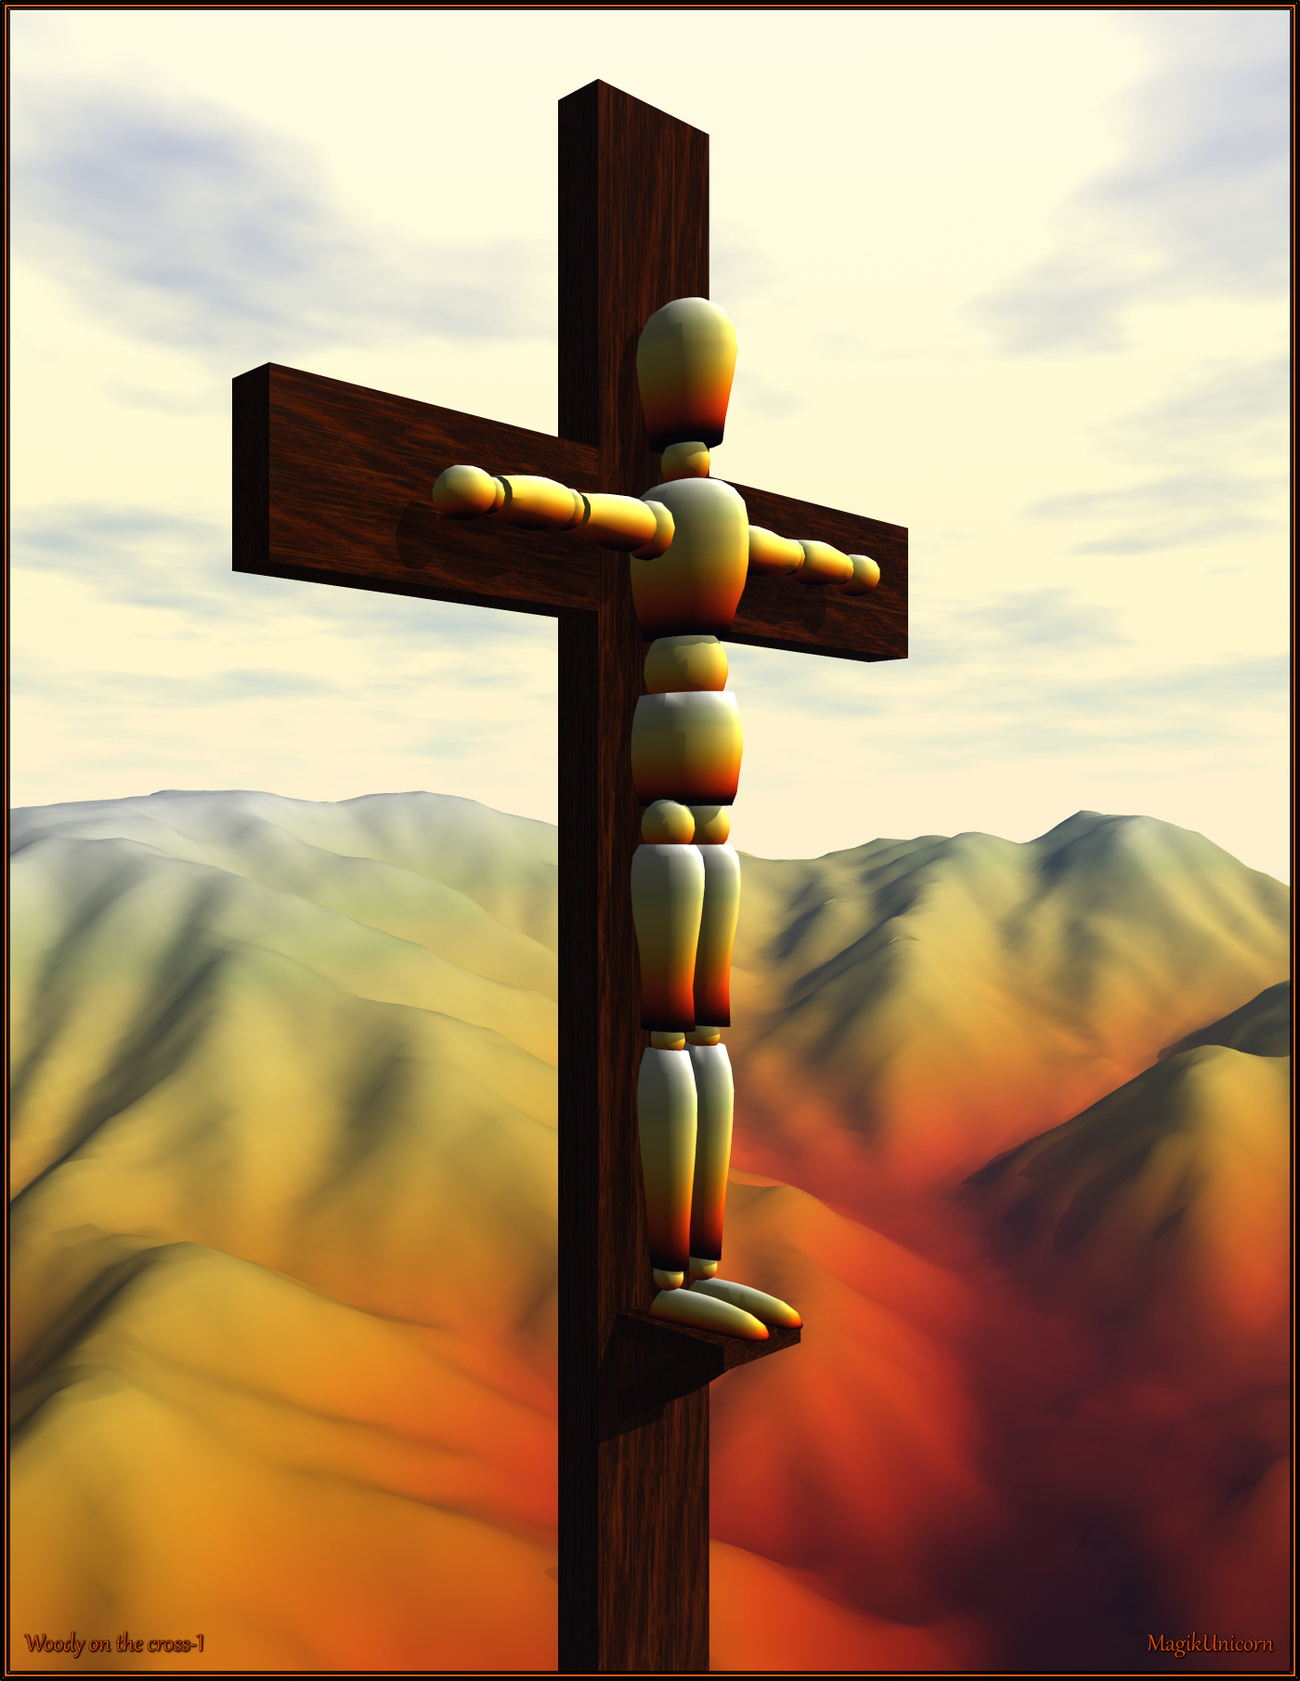 Woody on the cross-1